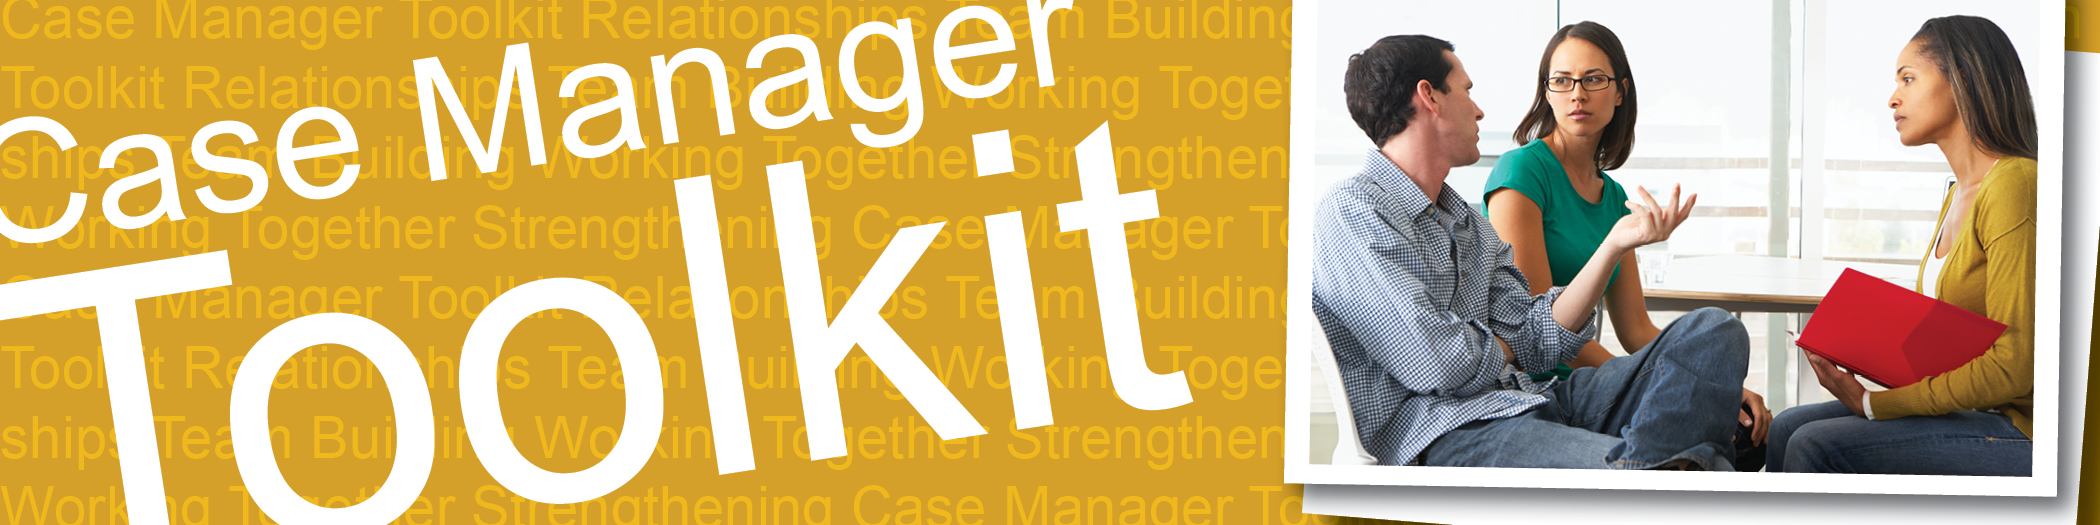 Case Manager toolkit